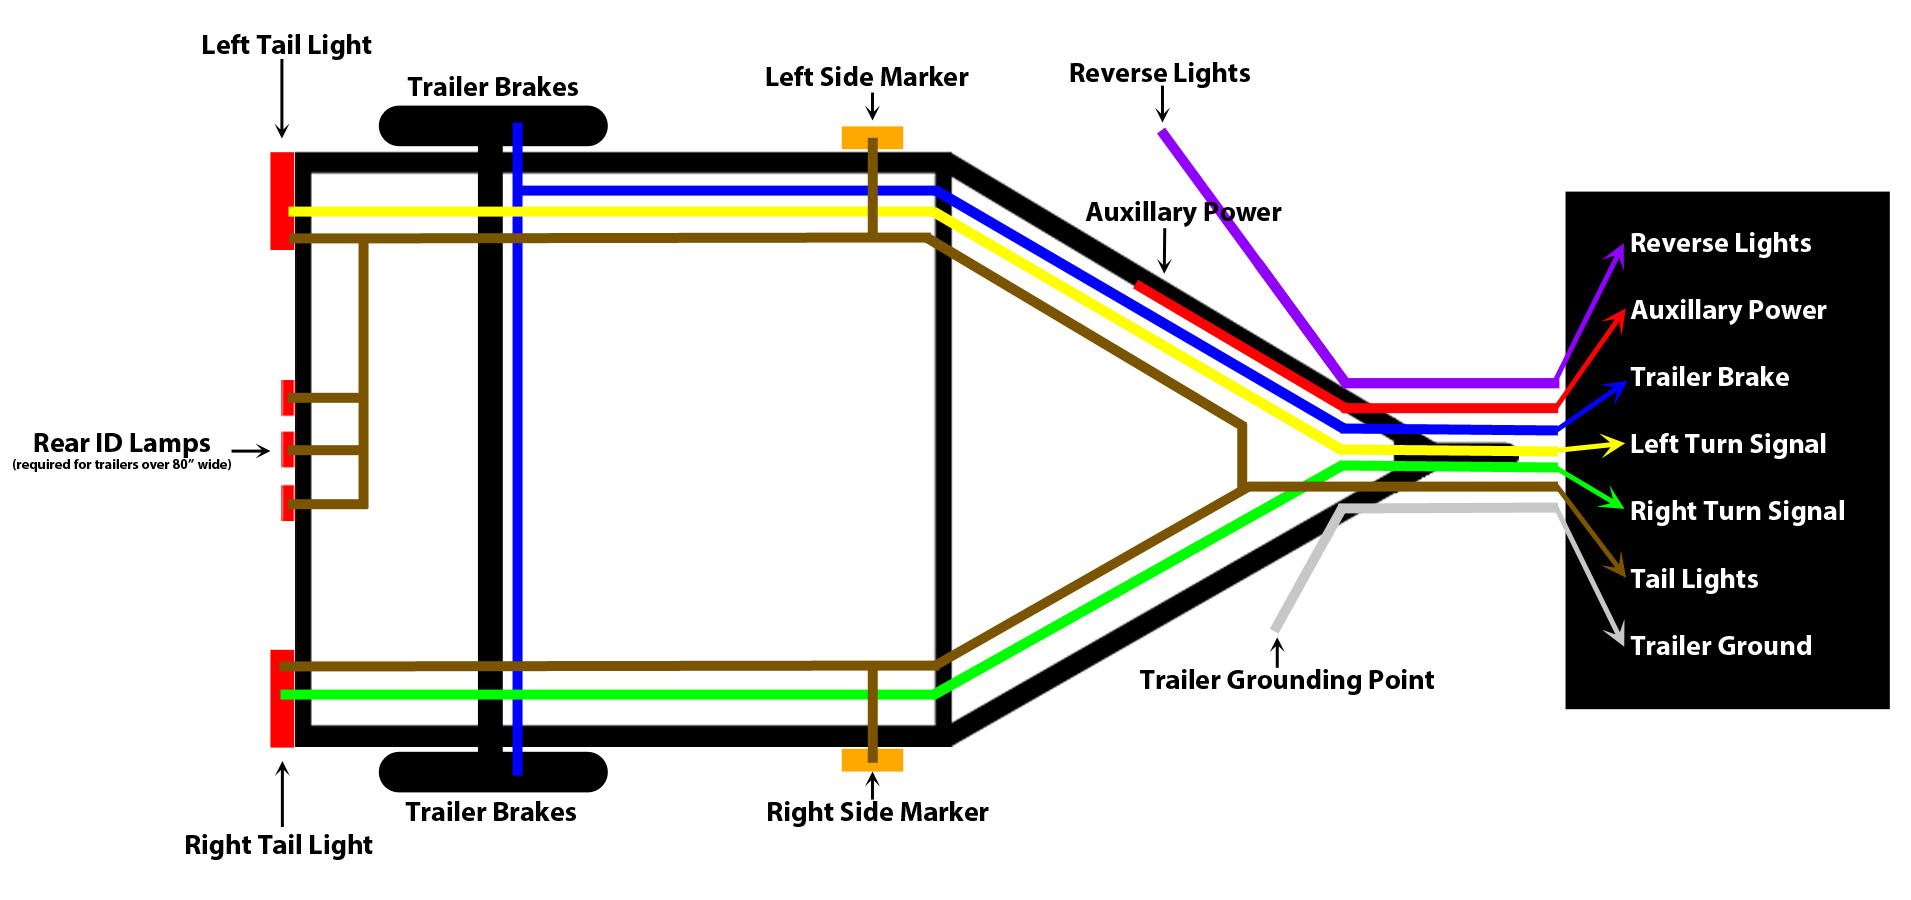 7 Pin Trailer Harness | Manual E-Books - Flat 4 Trailer Wiring Diagram